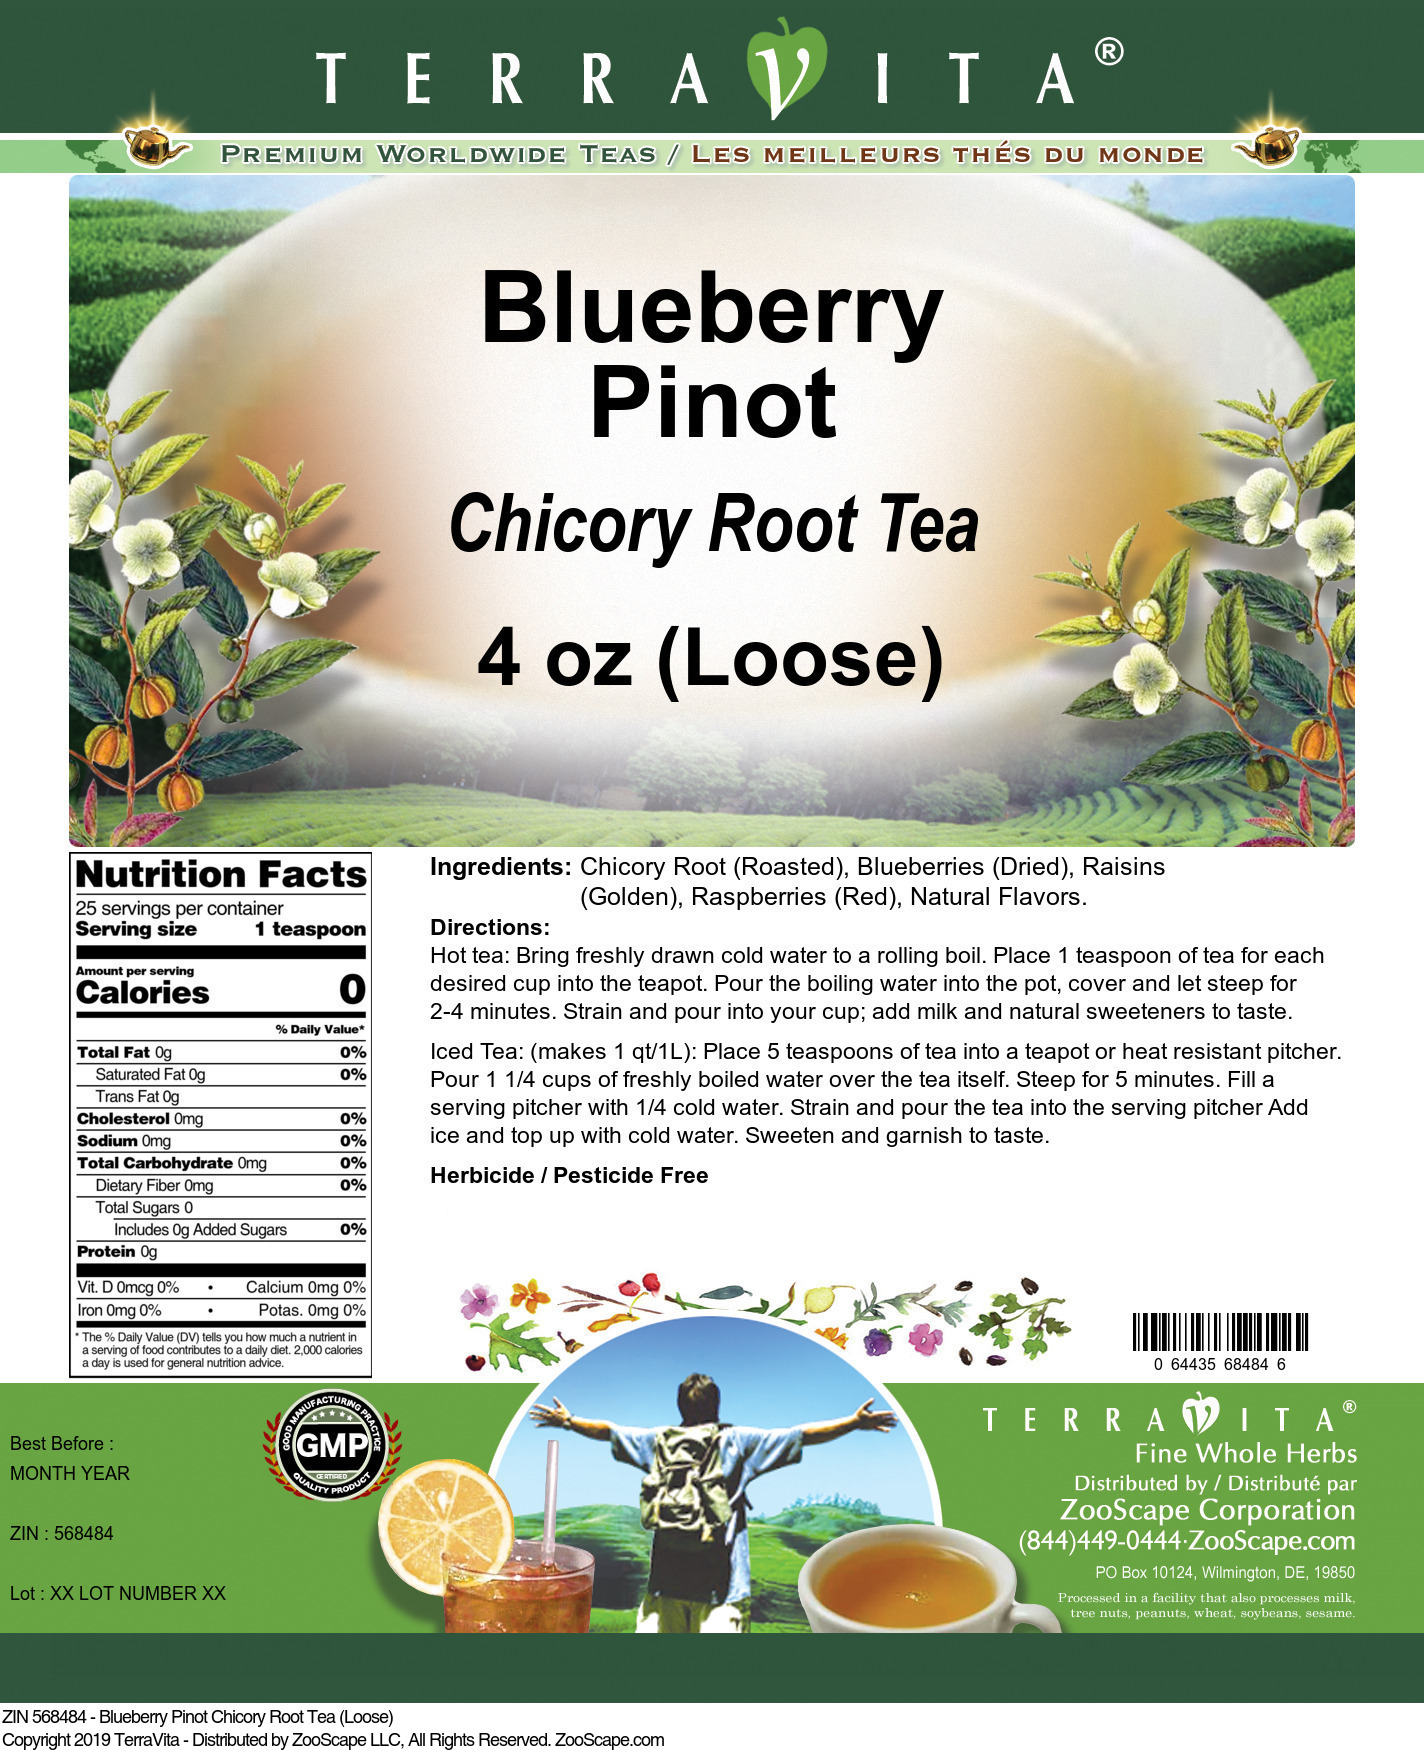 Blueberry Pinot Chicory Root Tea (Loose)